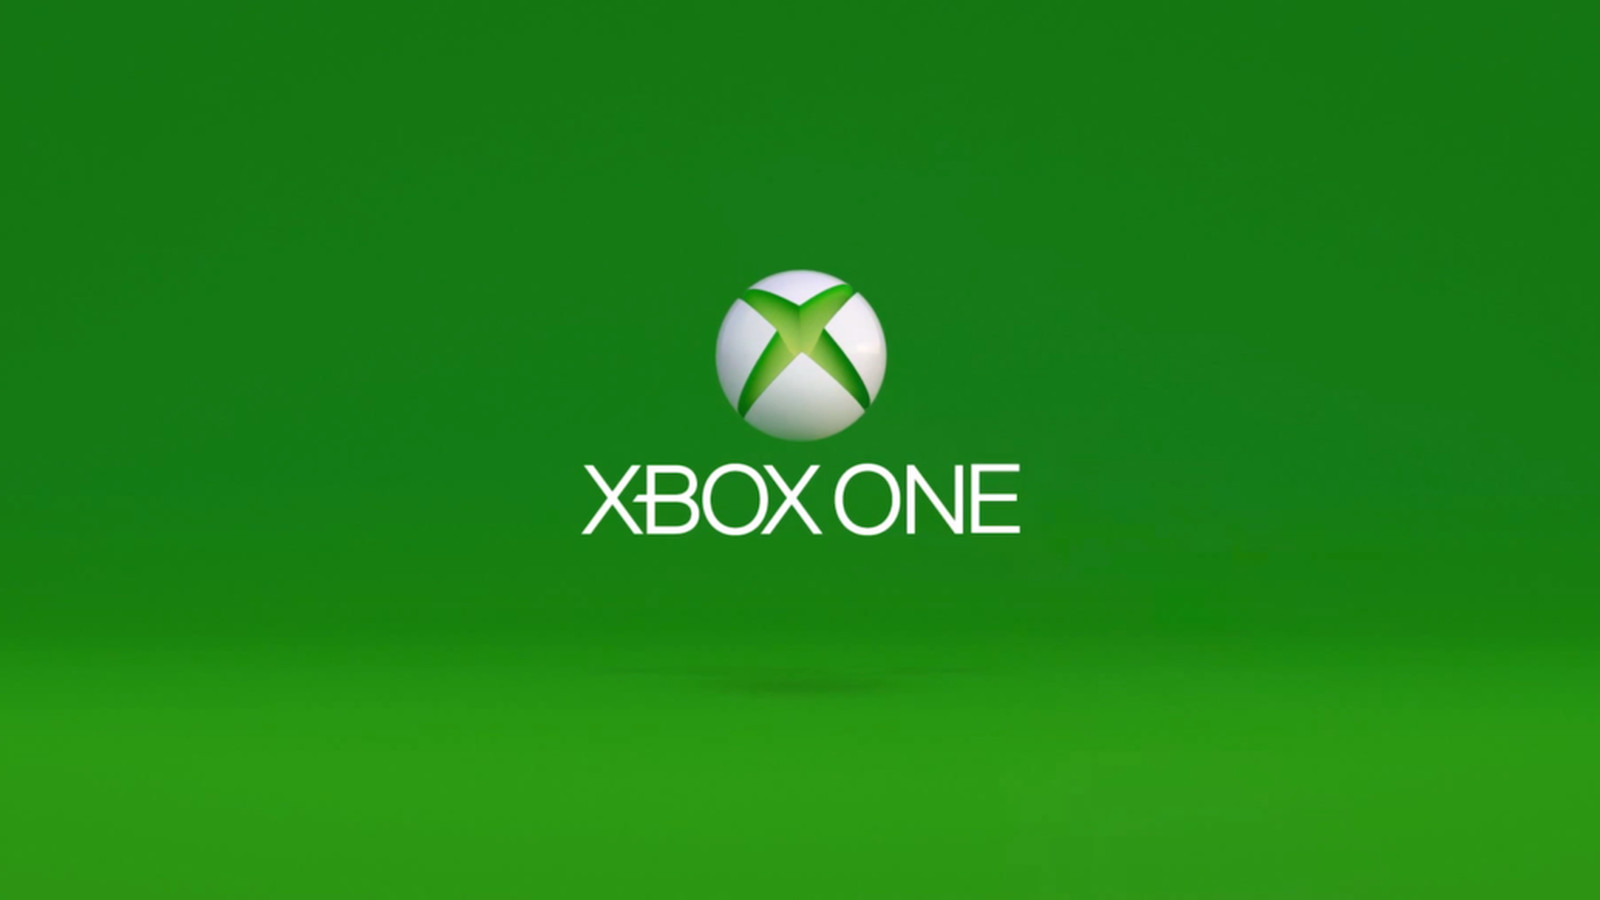 Microsoft explains the design of xbox one polygon